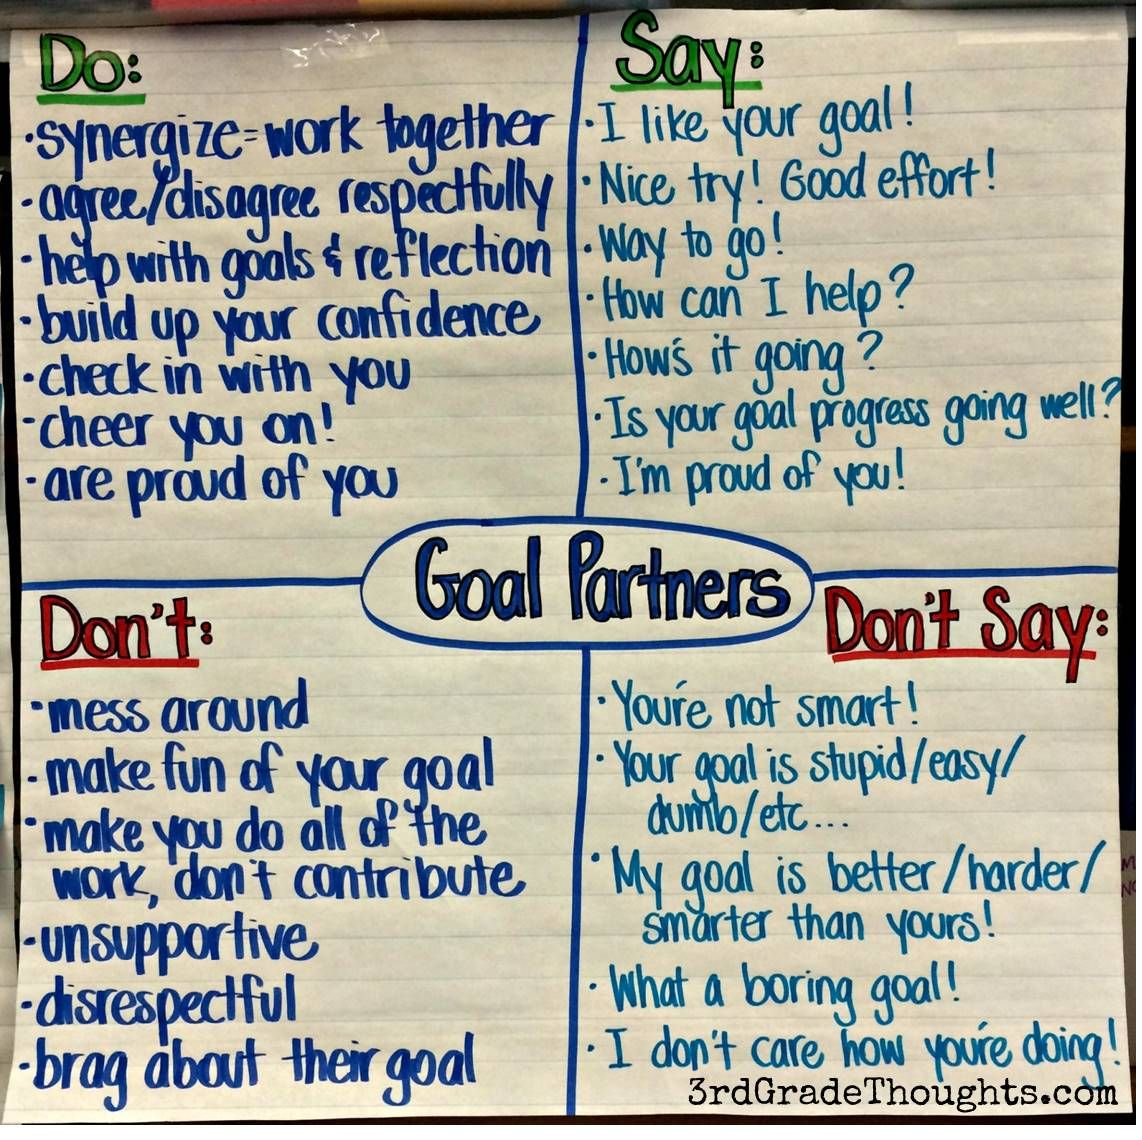 Working With Our Goal Partners